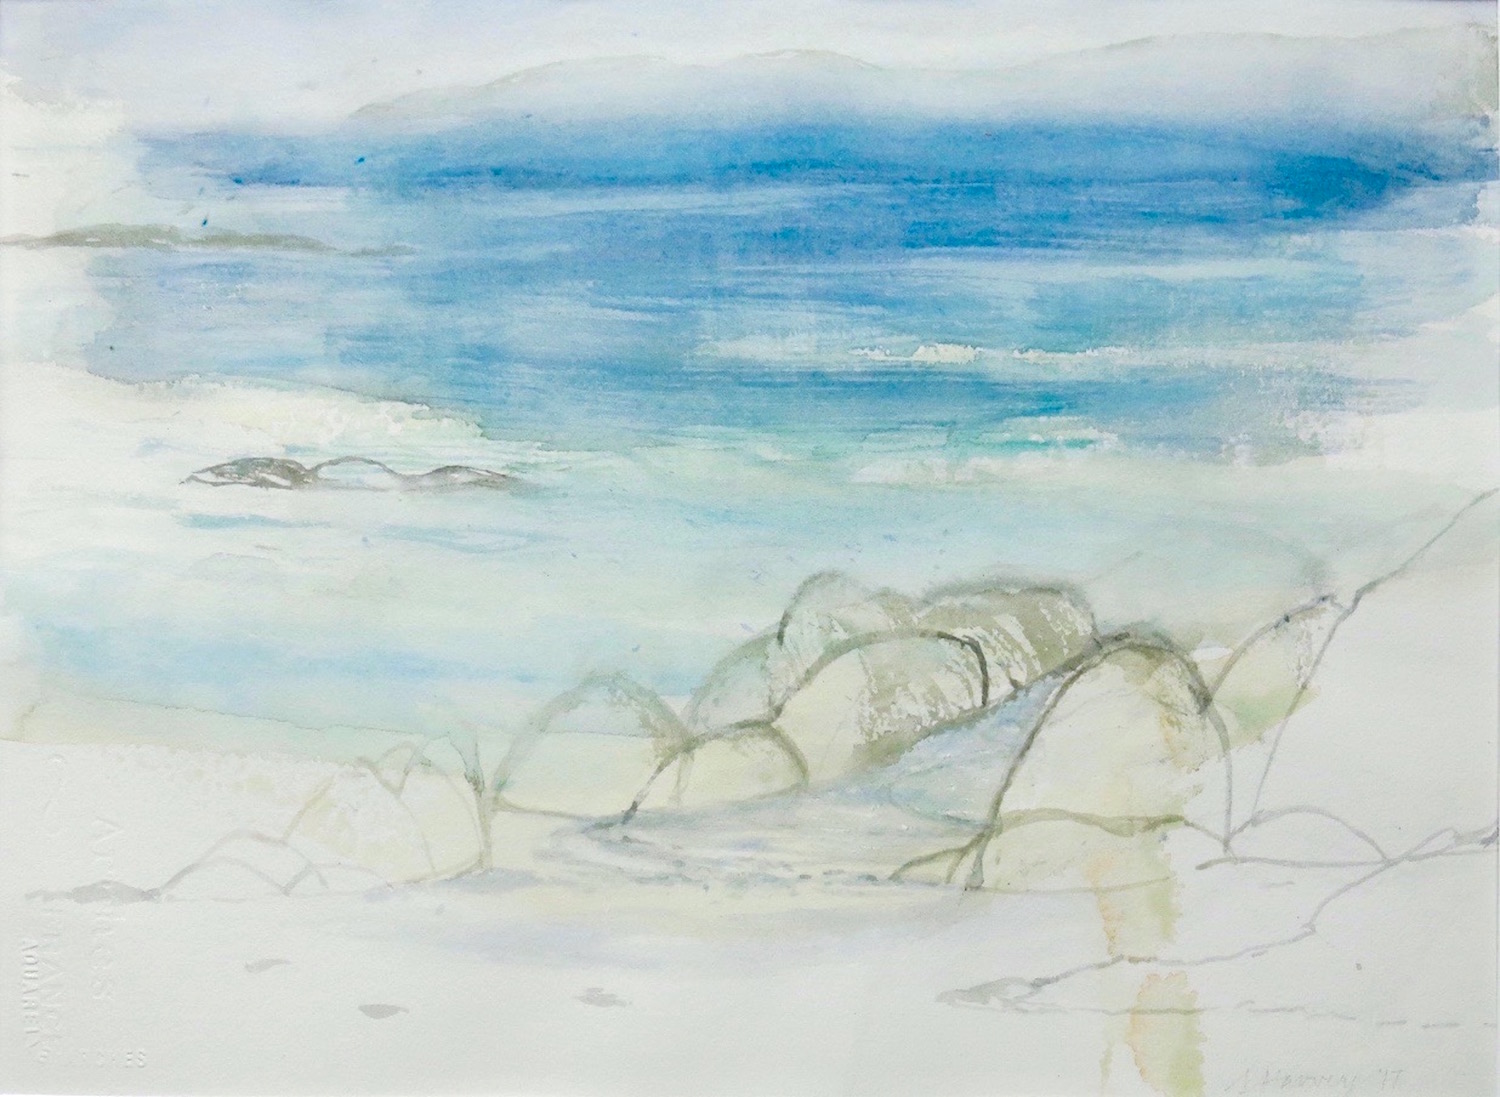 tidepool-white strand-iona  watercolour on paper  32x44cm